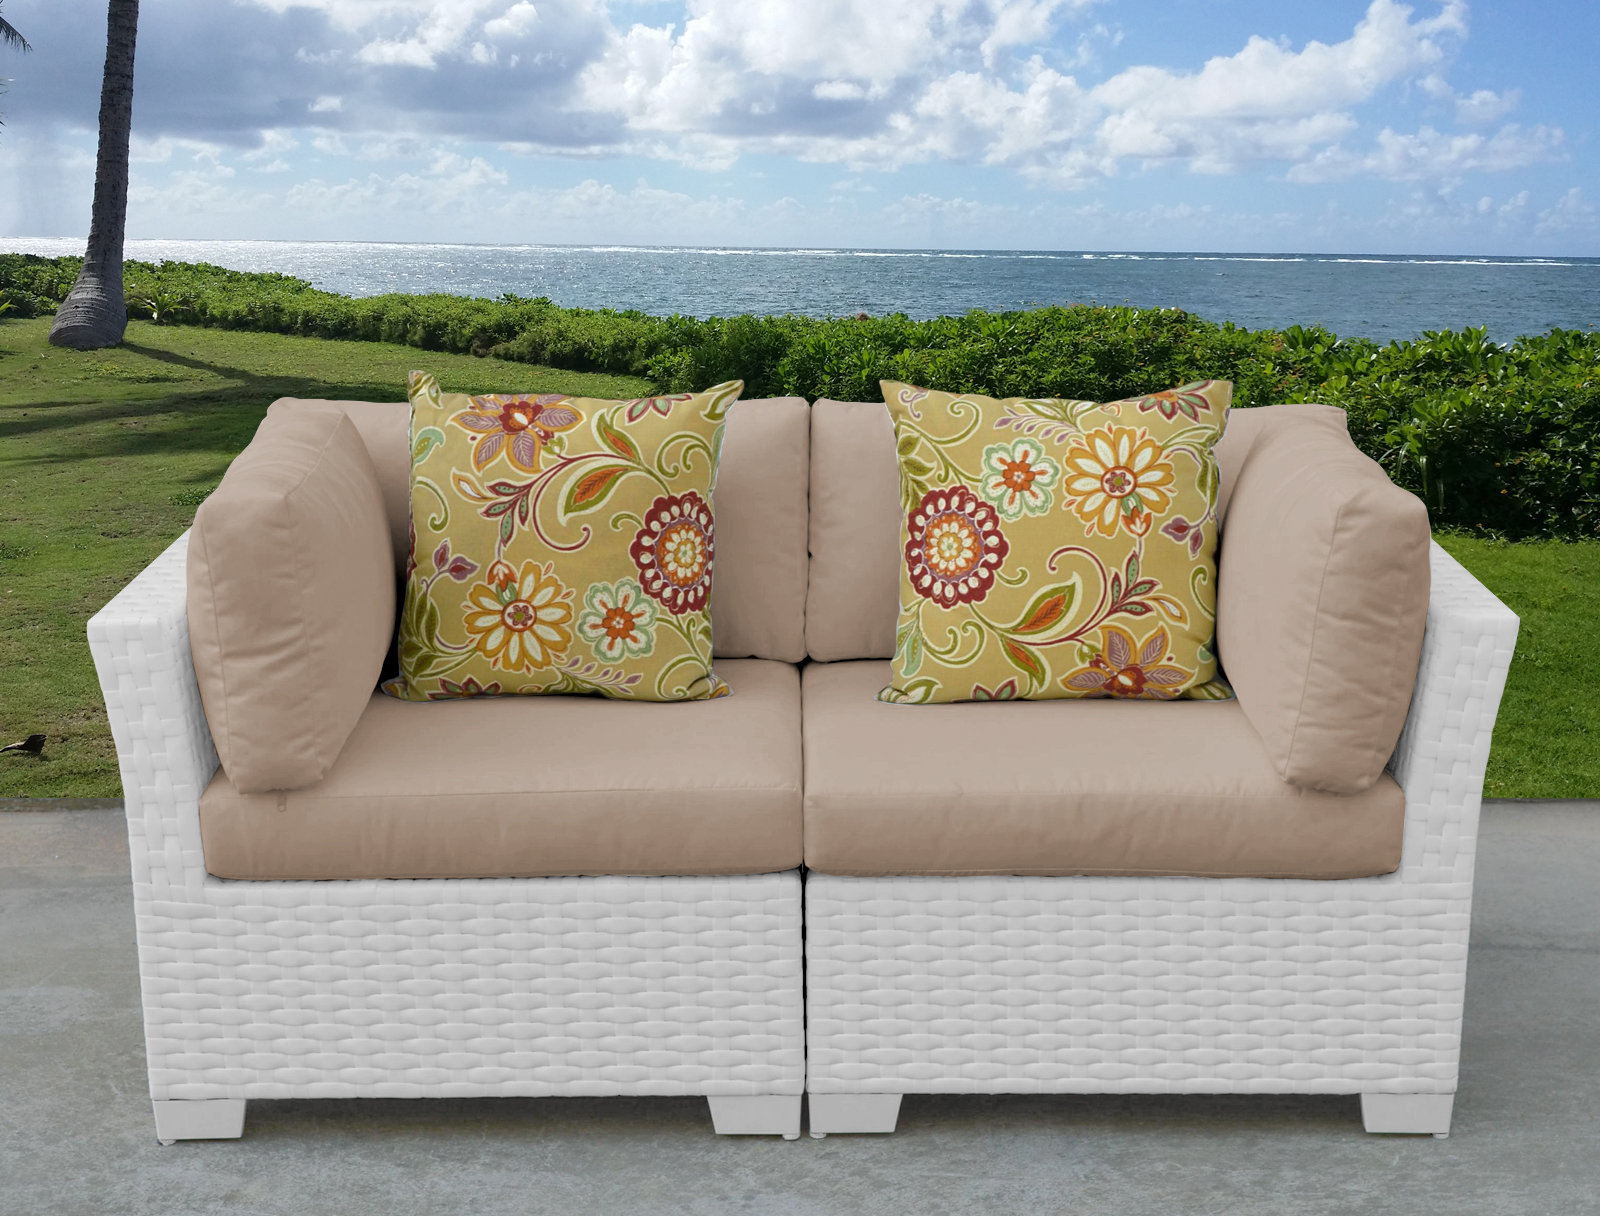 Best And Newest Alburg Loveseats With Cushions Regarding Monaco Loveseat With Cushions (View 11 of 25)